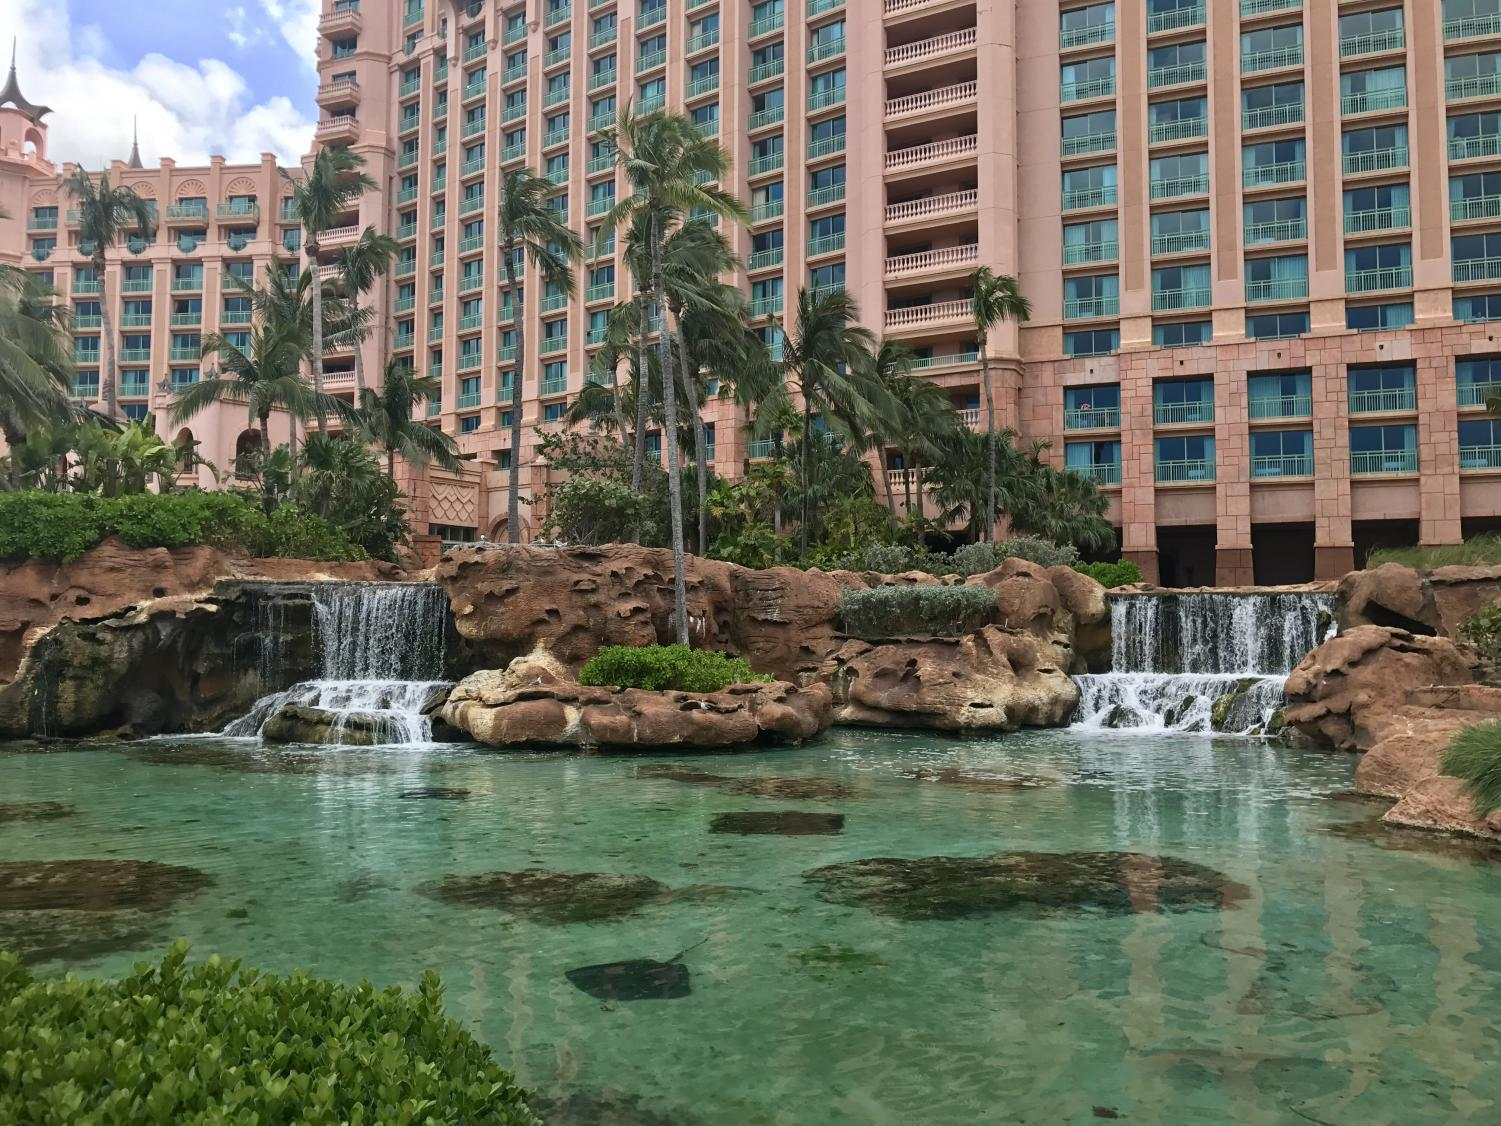 Tropical scenery of the famous spring break spot Atlantis in Nassau Bahamas.